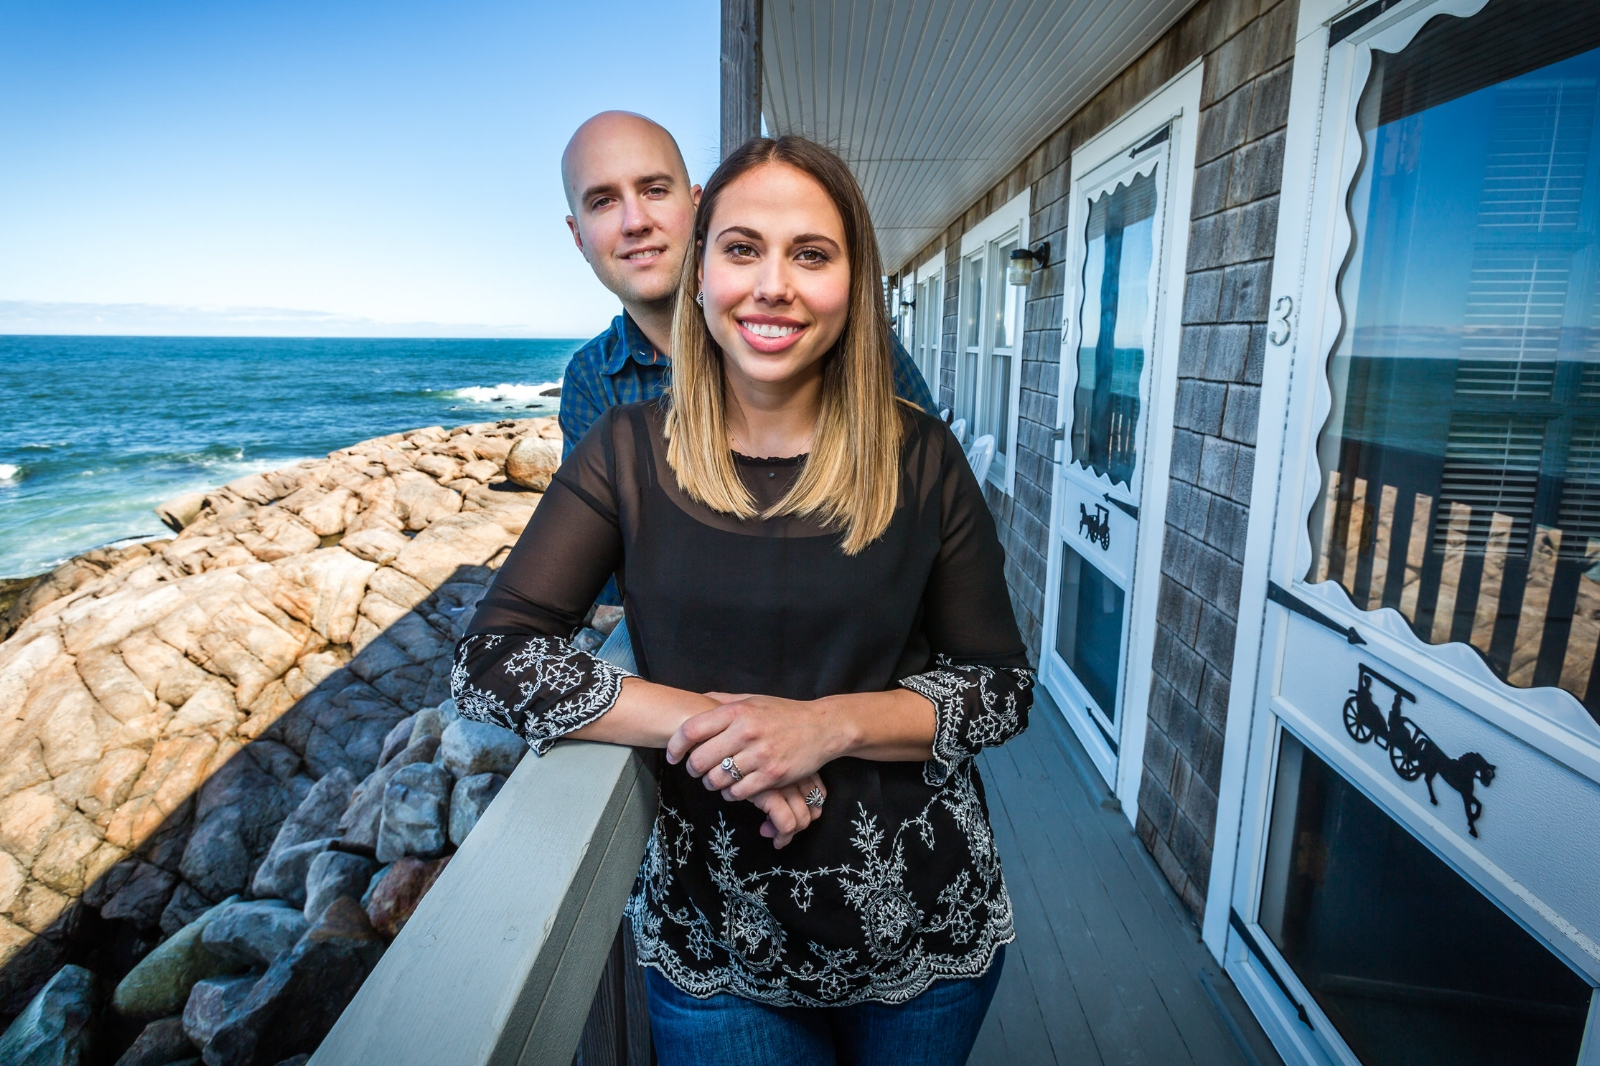 8 Rooms with a View - A young couple's dream comes true on Bearskin Neck